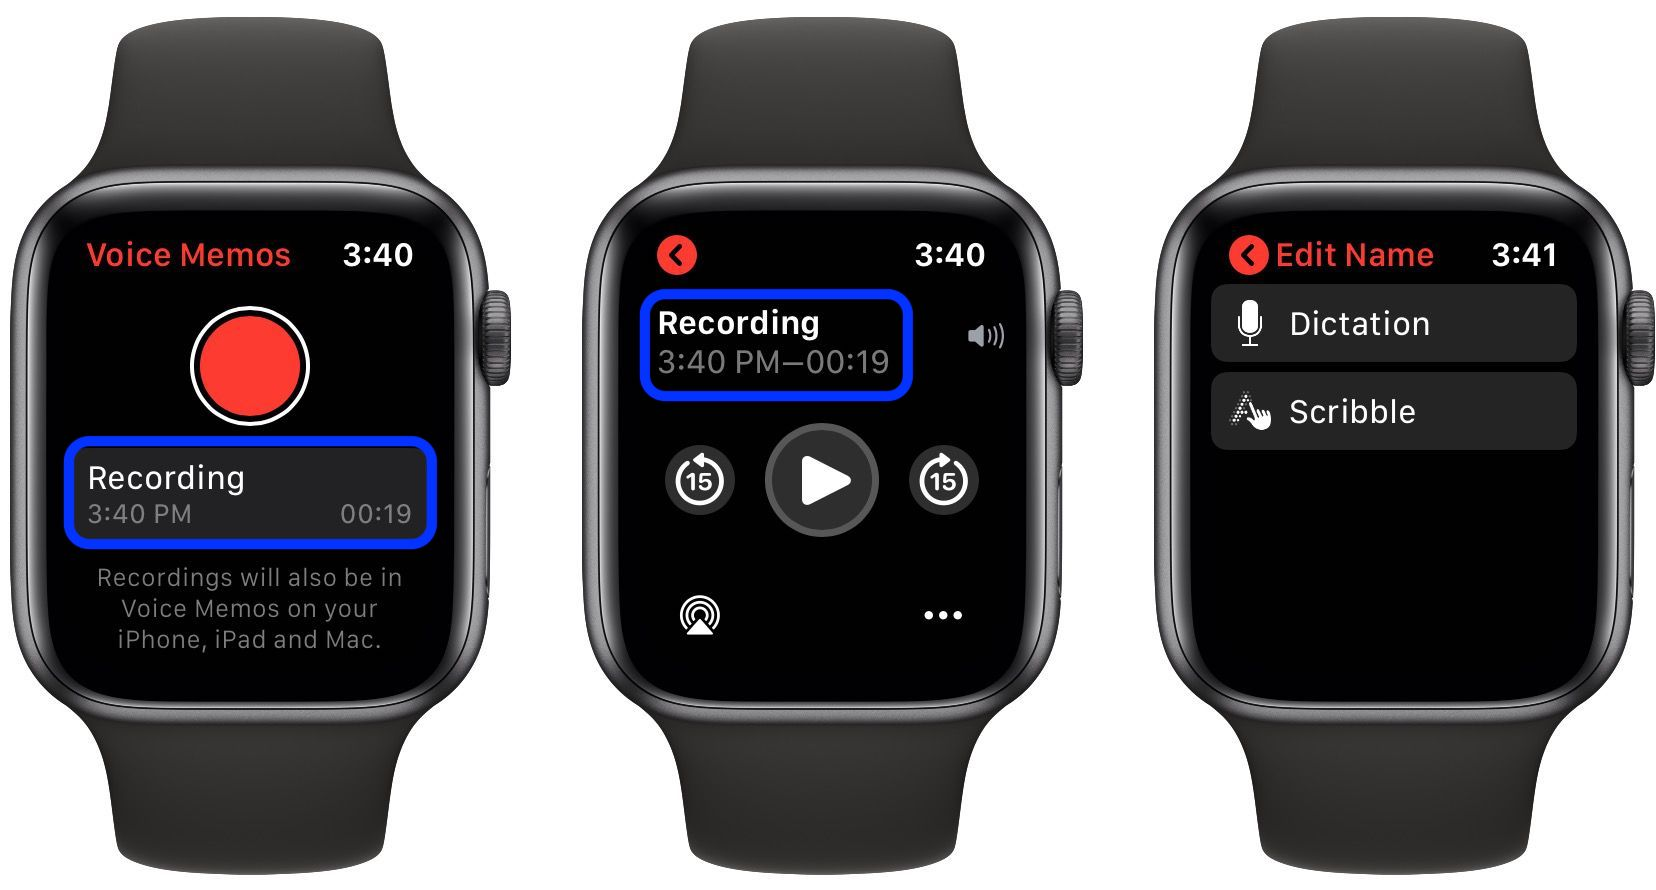 how to record Voice Memos Apple Watch walkthrough 2